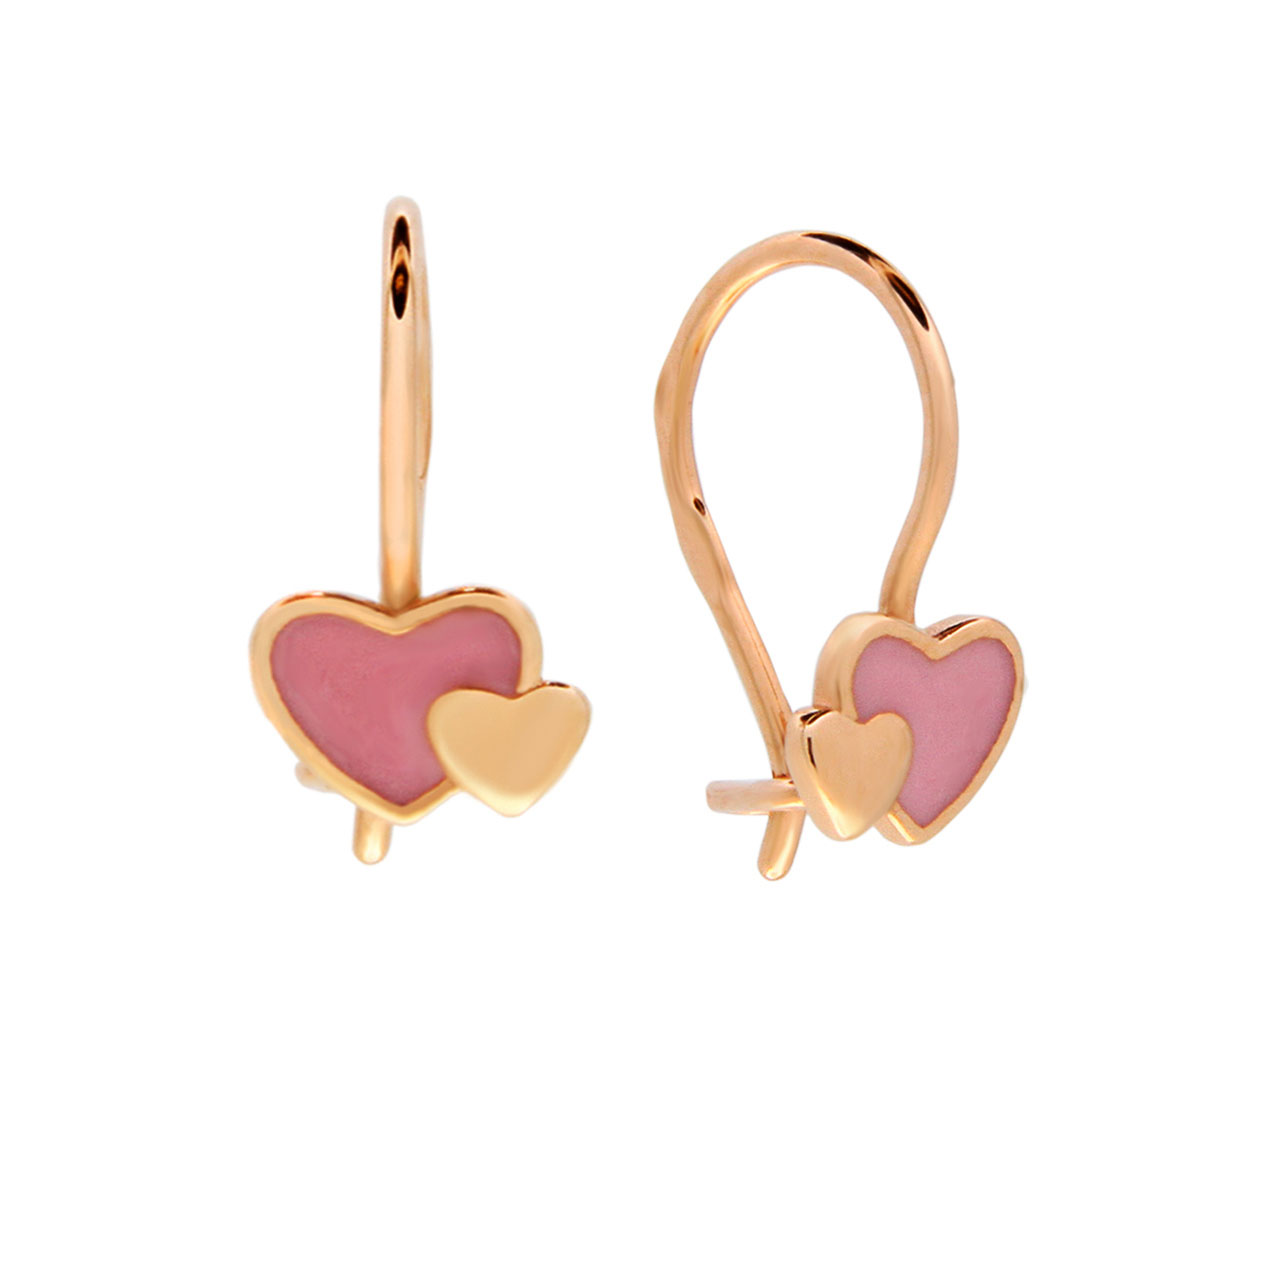 Hypoallergenic gold kids earrings 1